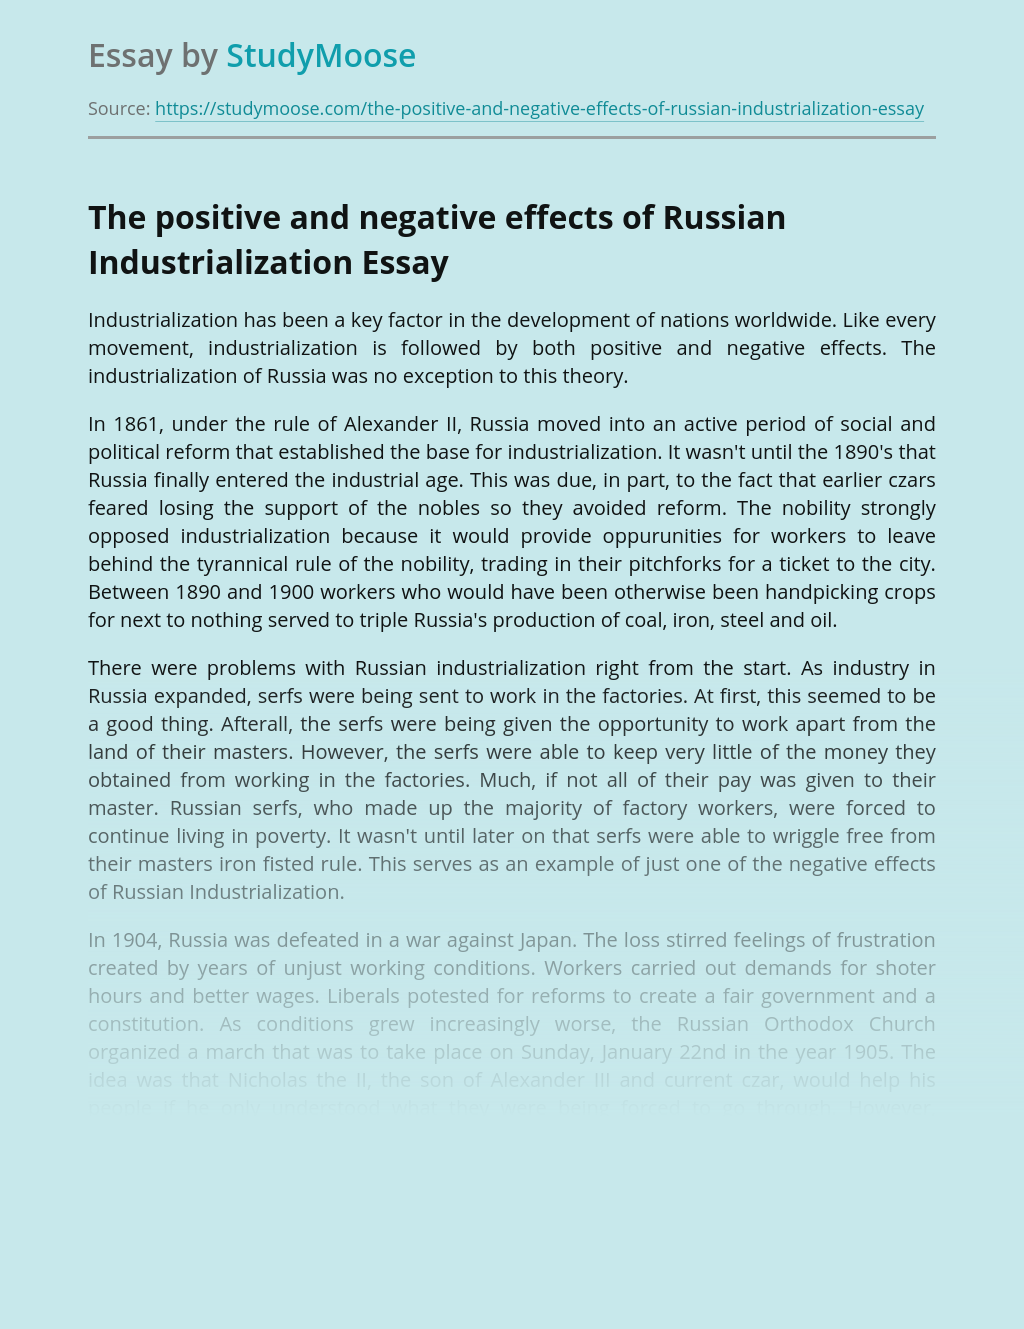 The Positive and Negative Effects of Russian Industrialization